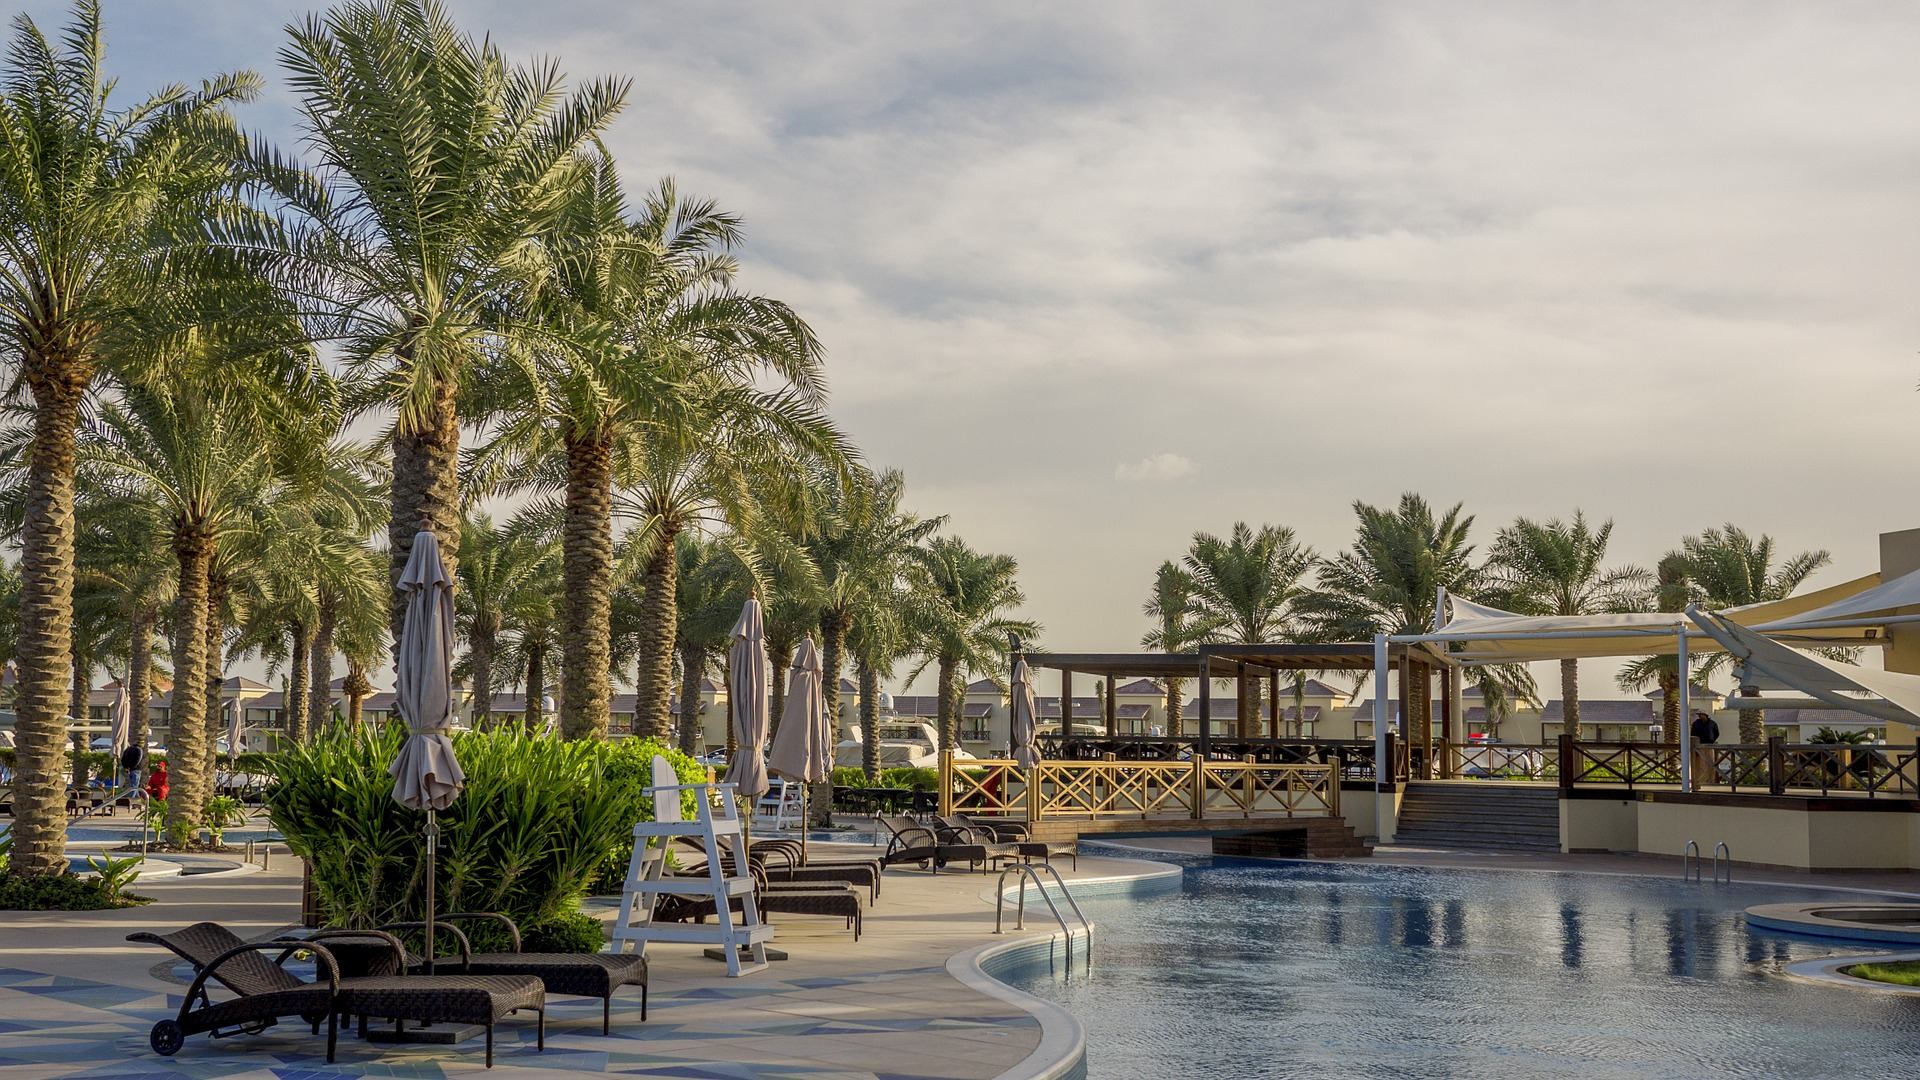 resort swimming pool with palm trees surrounding it